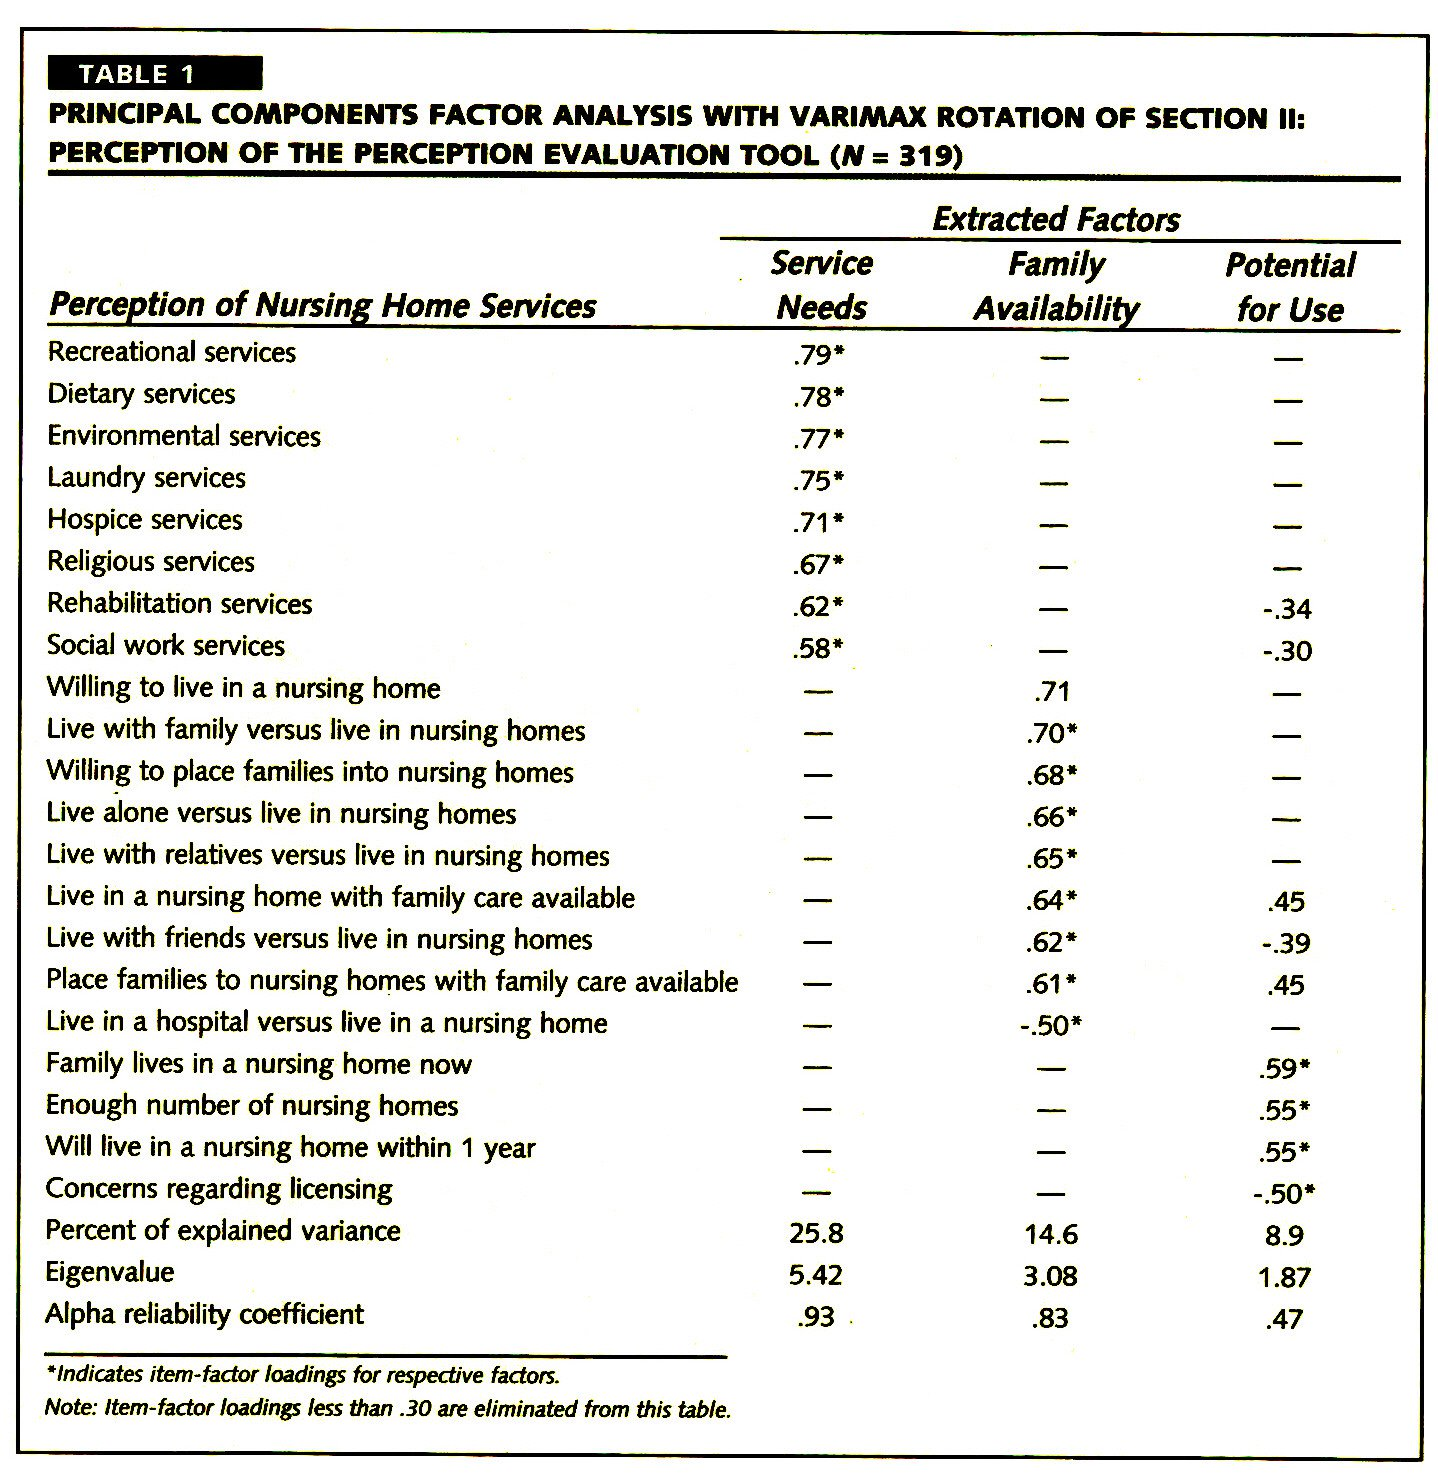 TABLE 1PRINCIPAL COMPONENTS FACTOR ANALYSIS WITH VARIMAX ROTATION OF SECTION II: PERCEPTION OF THE PERCEPTION EVALUATION TOOL (N = 319)